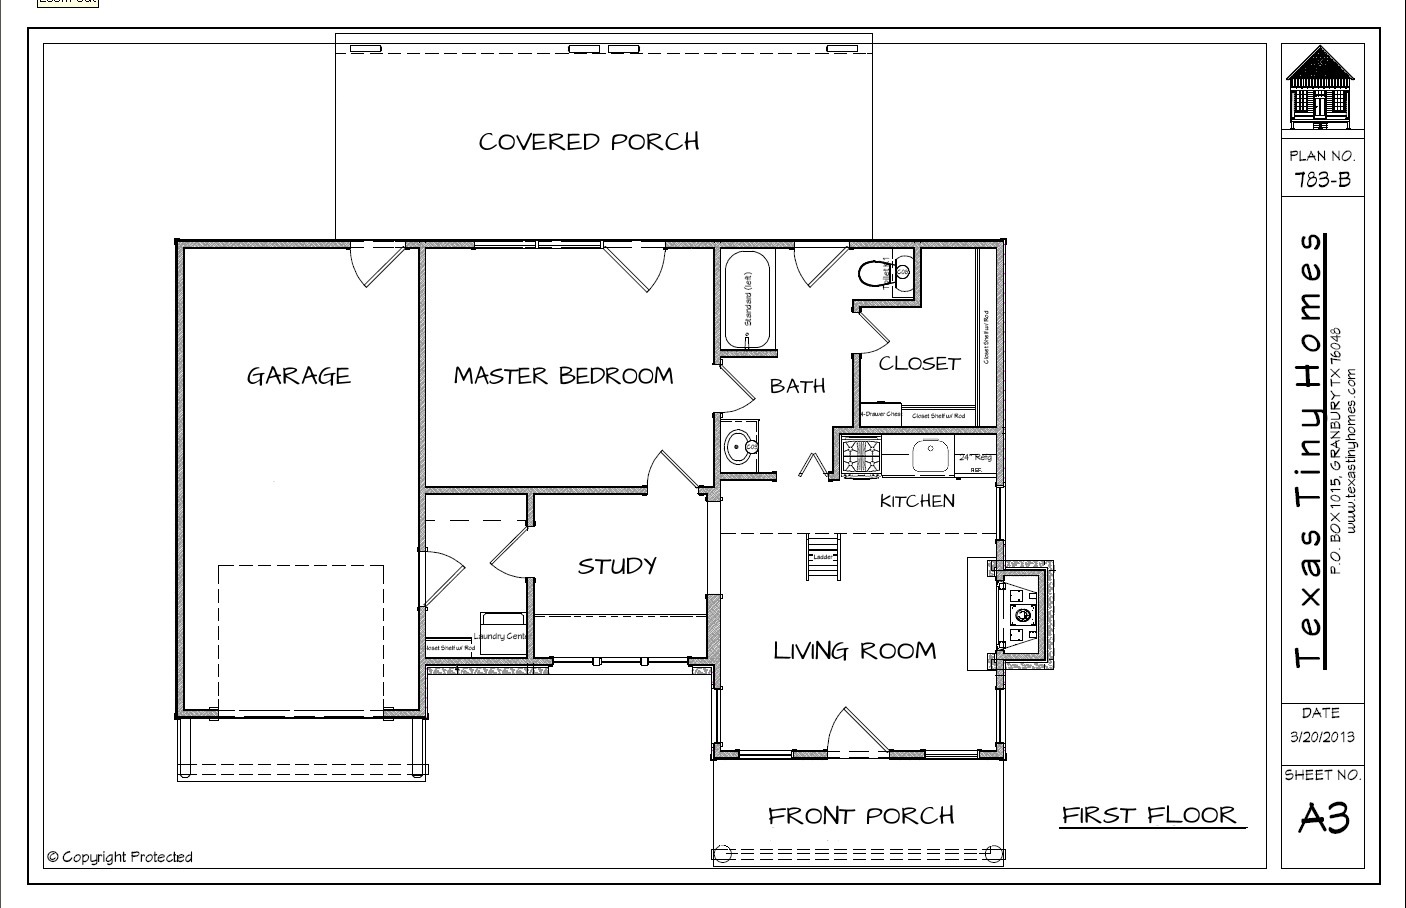 Plan 783 texas tiny homes for Tiny home design plans